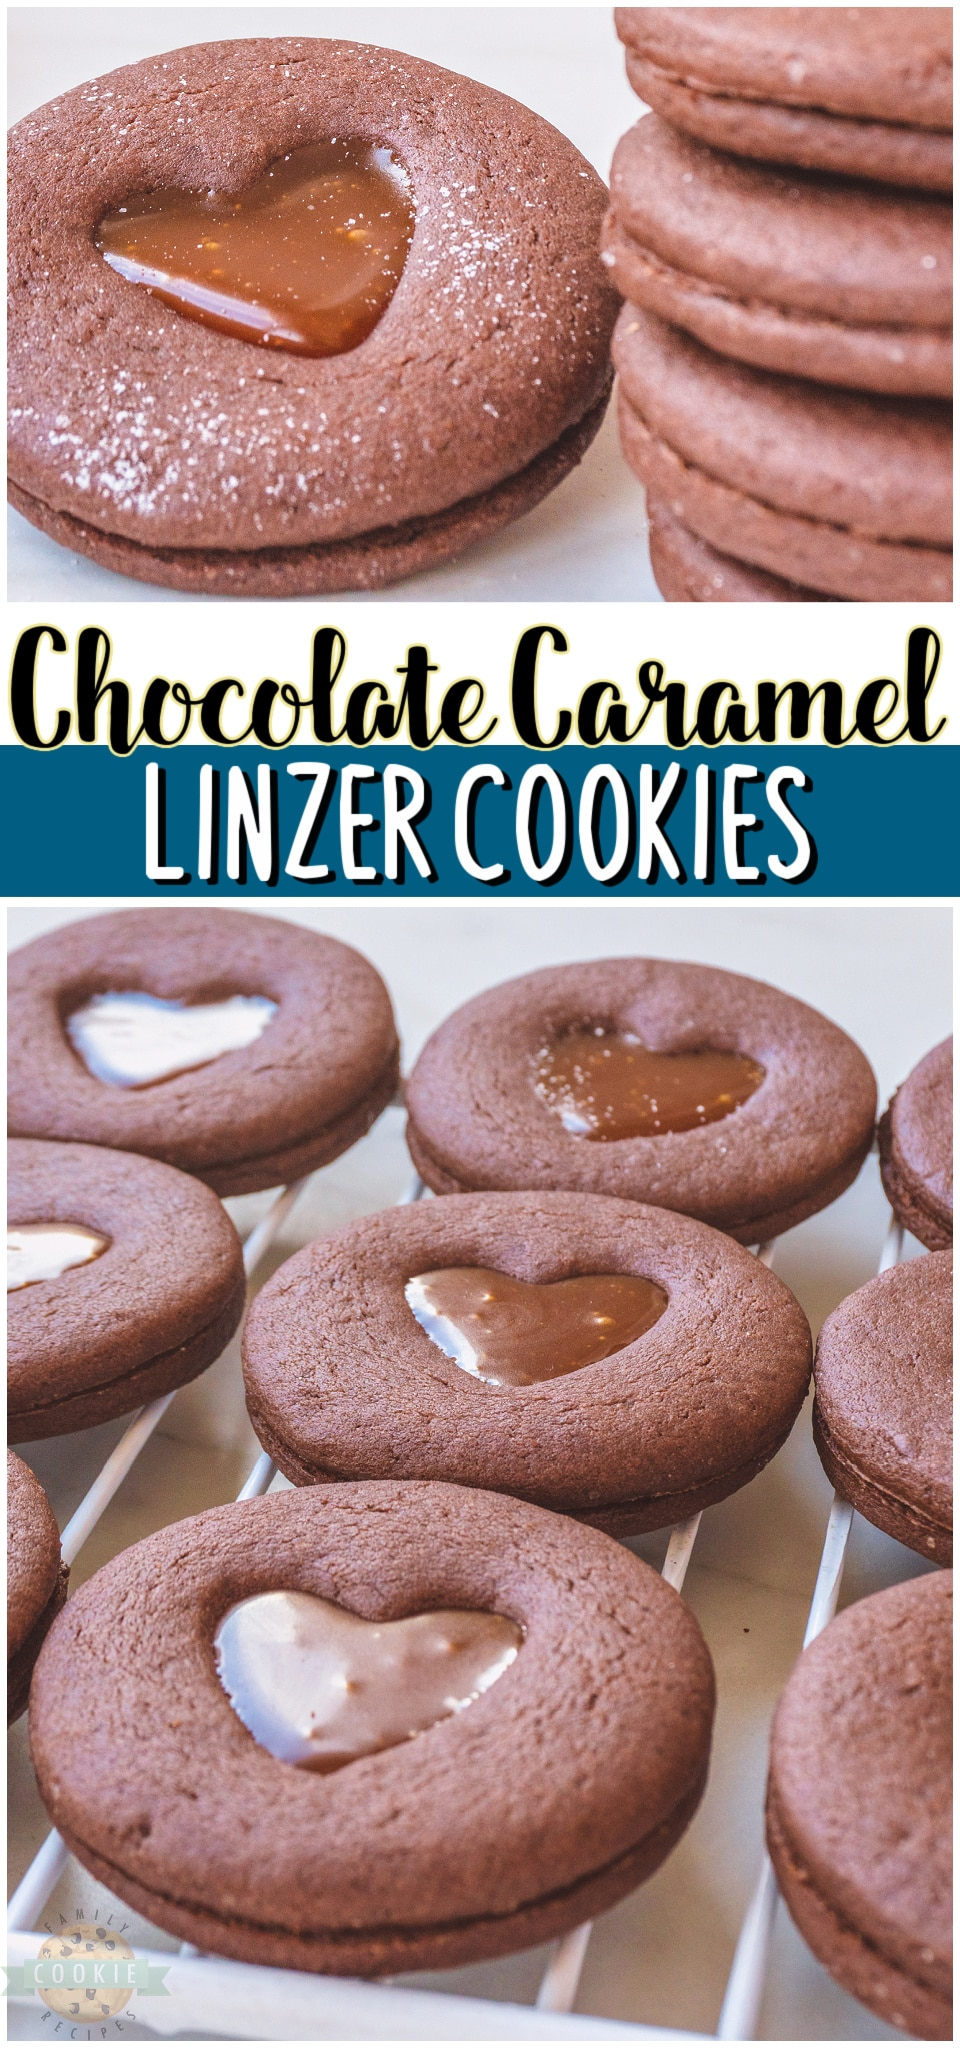 Chocolate Caramel Linzer Cookies are sandwich cookies that pack a lot of flavor into every gooey bite. With caramel filled chocolate cookies, every bite is going to be delicious but making these cookies is half of the fun! #cookies #Linzer #chocolate #caramel #baking #dessert #easyrecipe from FAMILY COOKIE RECIPES via @familycookierecipes